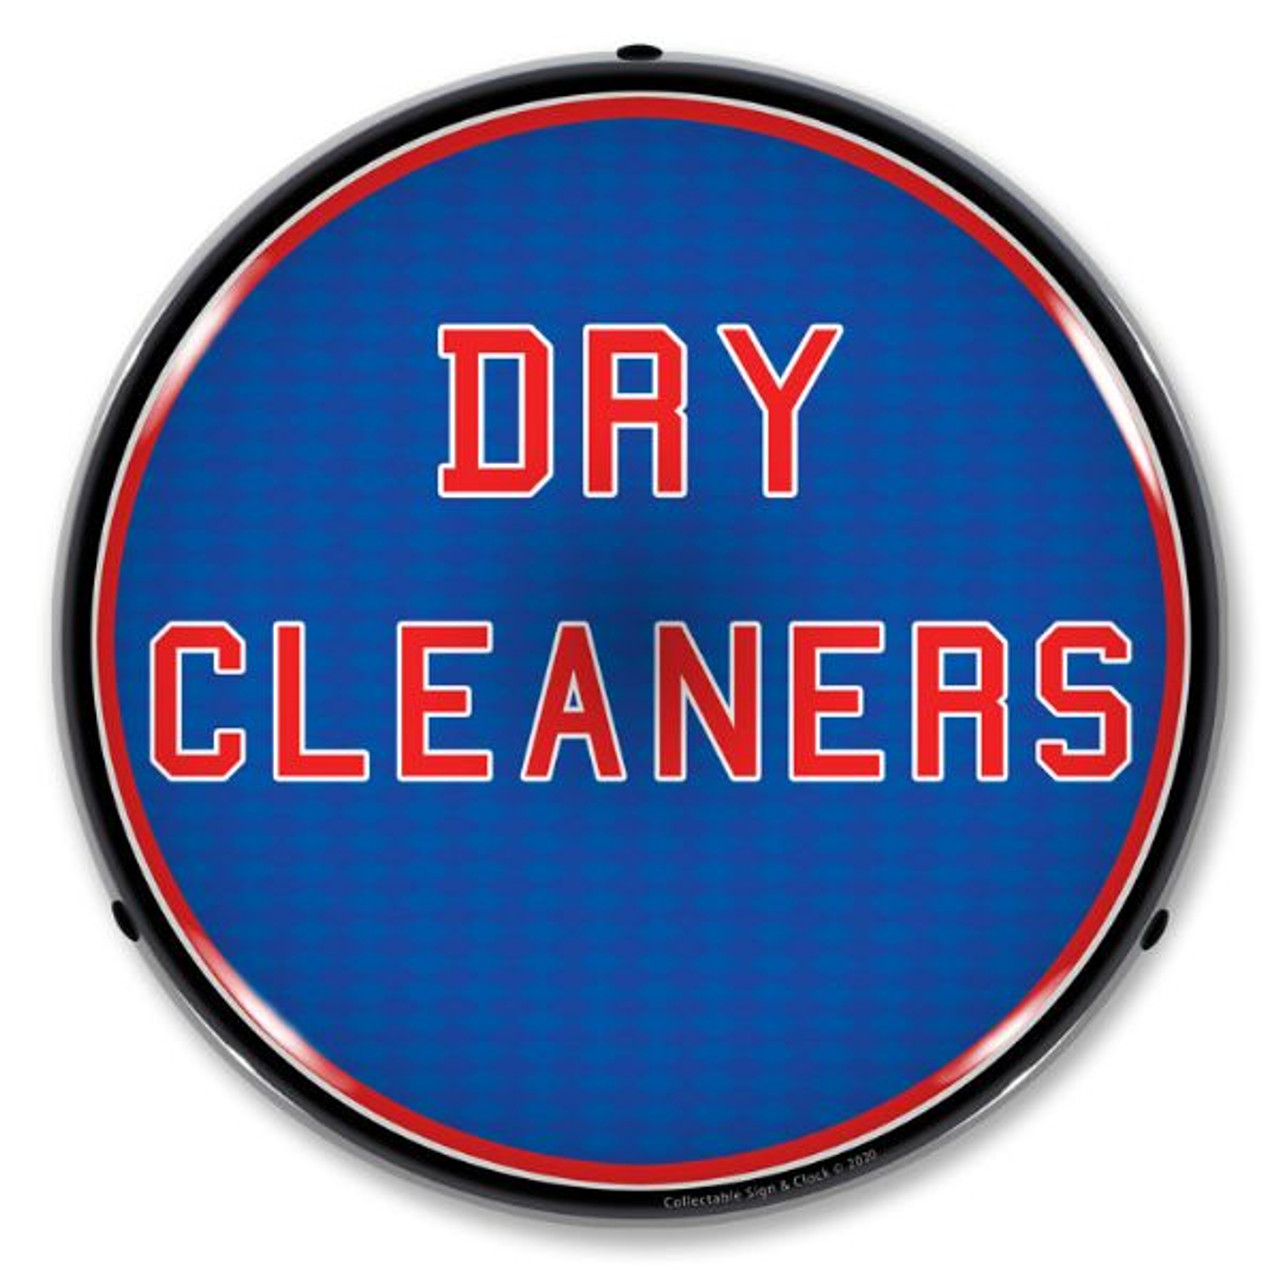 Dry Cleaners LED Lighted Business Sign 14 x 14 Inches